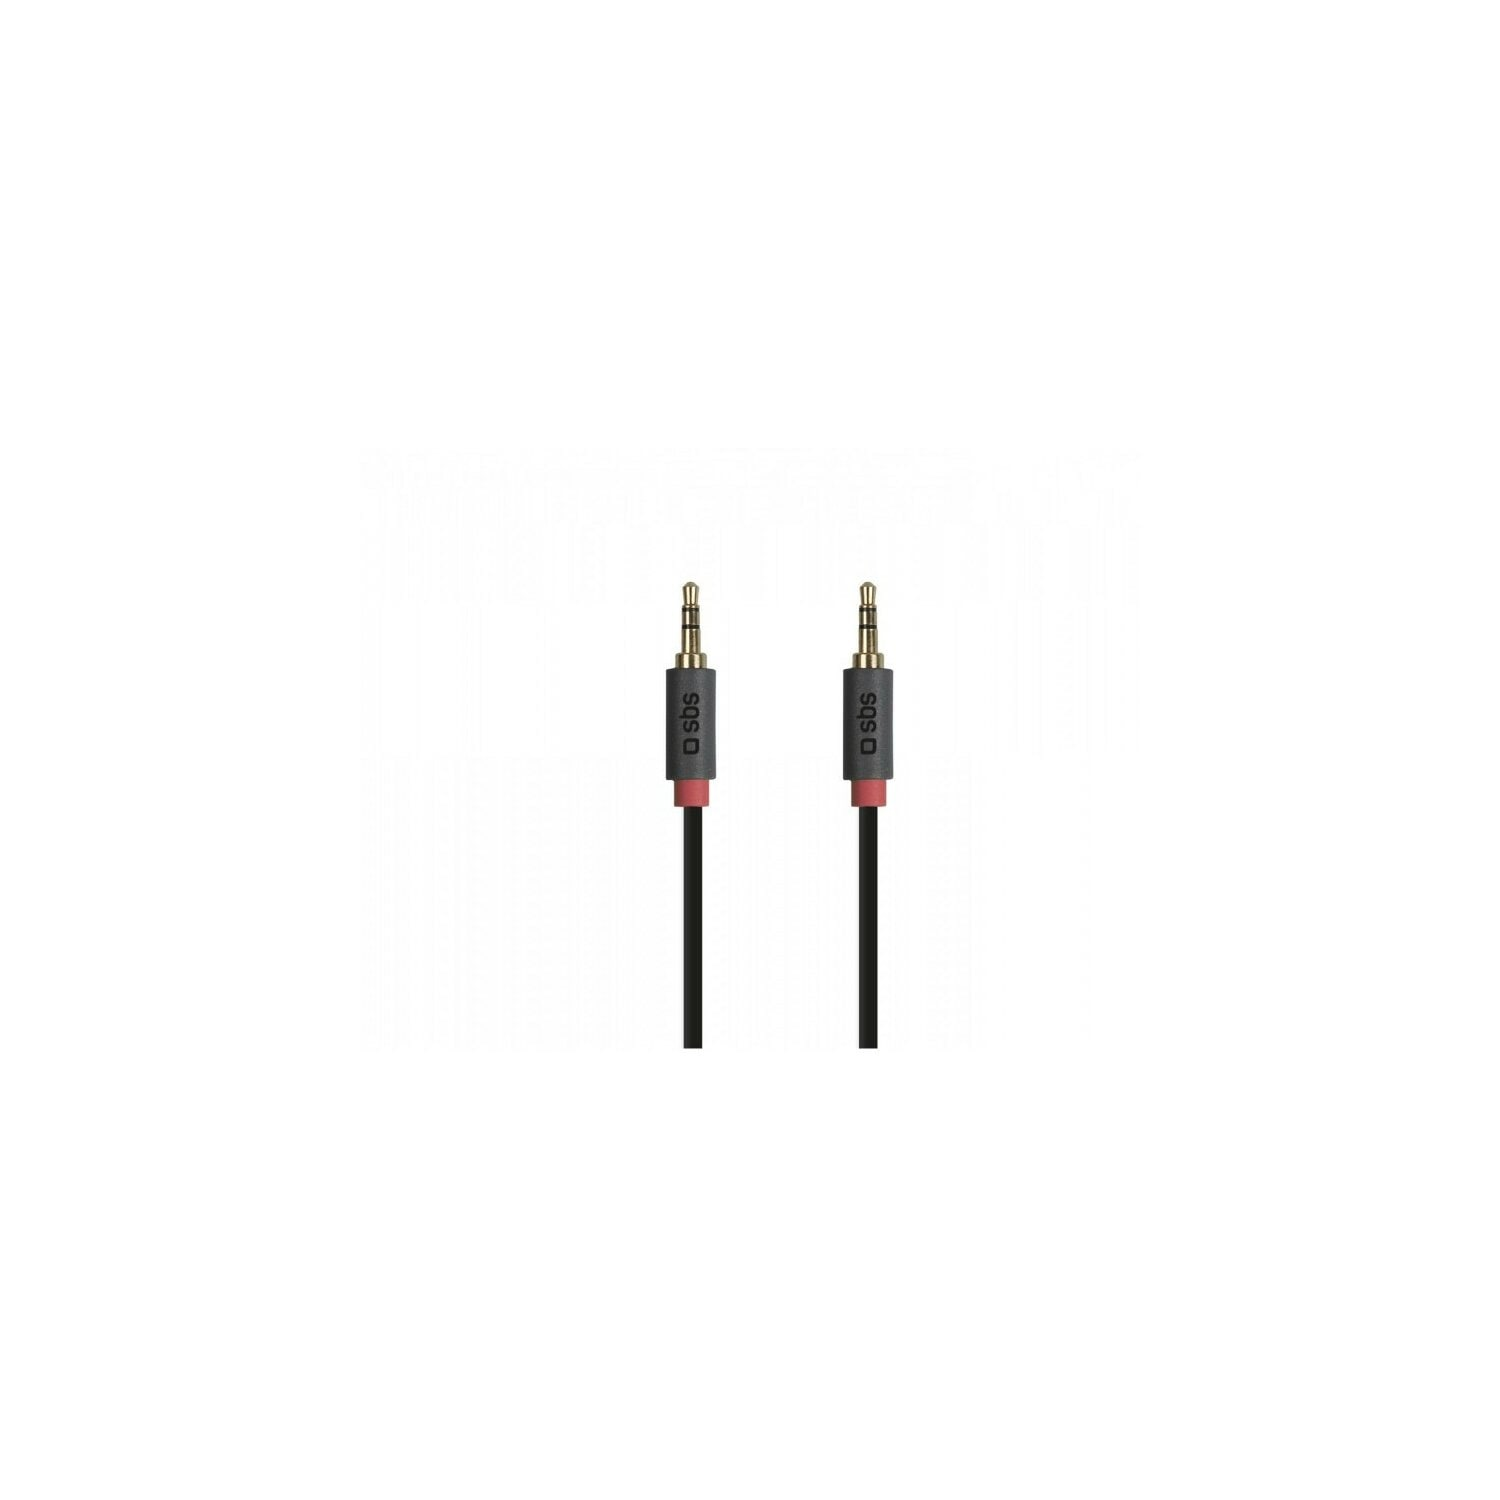 Kabel SBS Audio stereo 3,5mm jack mobile and smartphones 1,5m